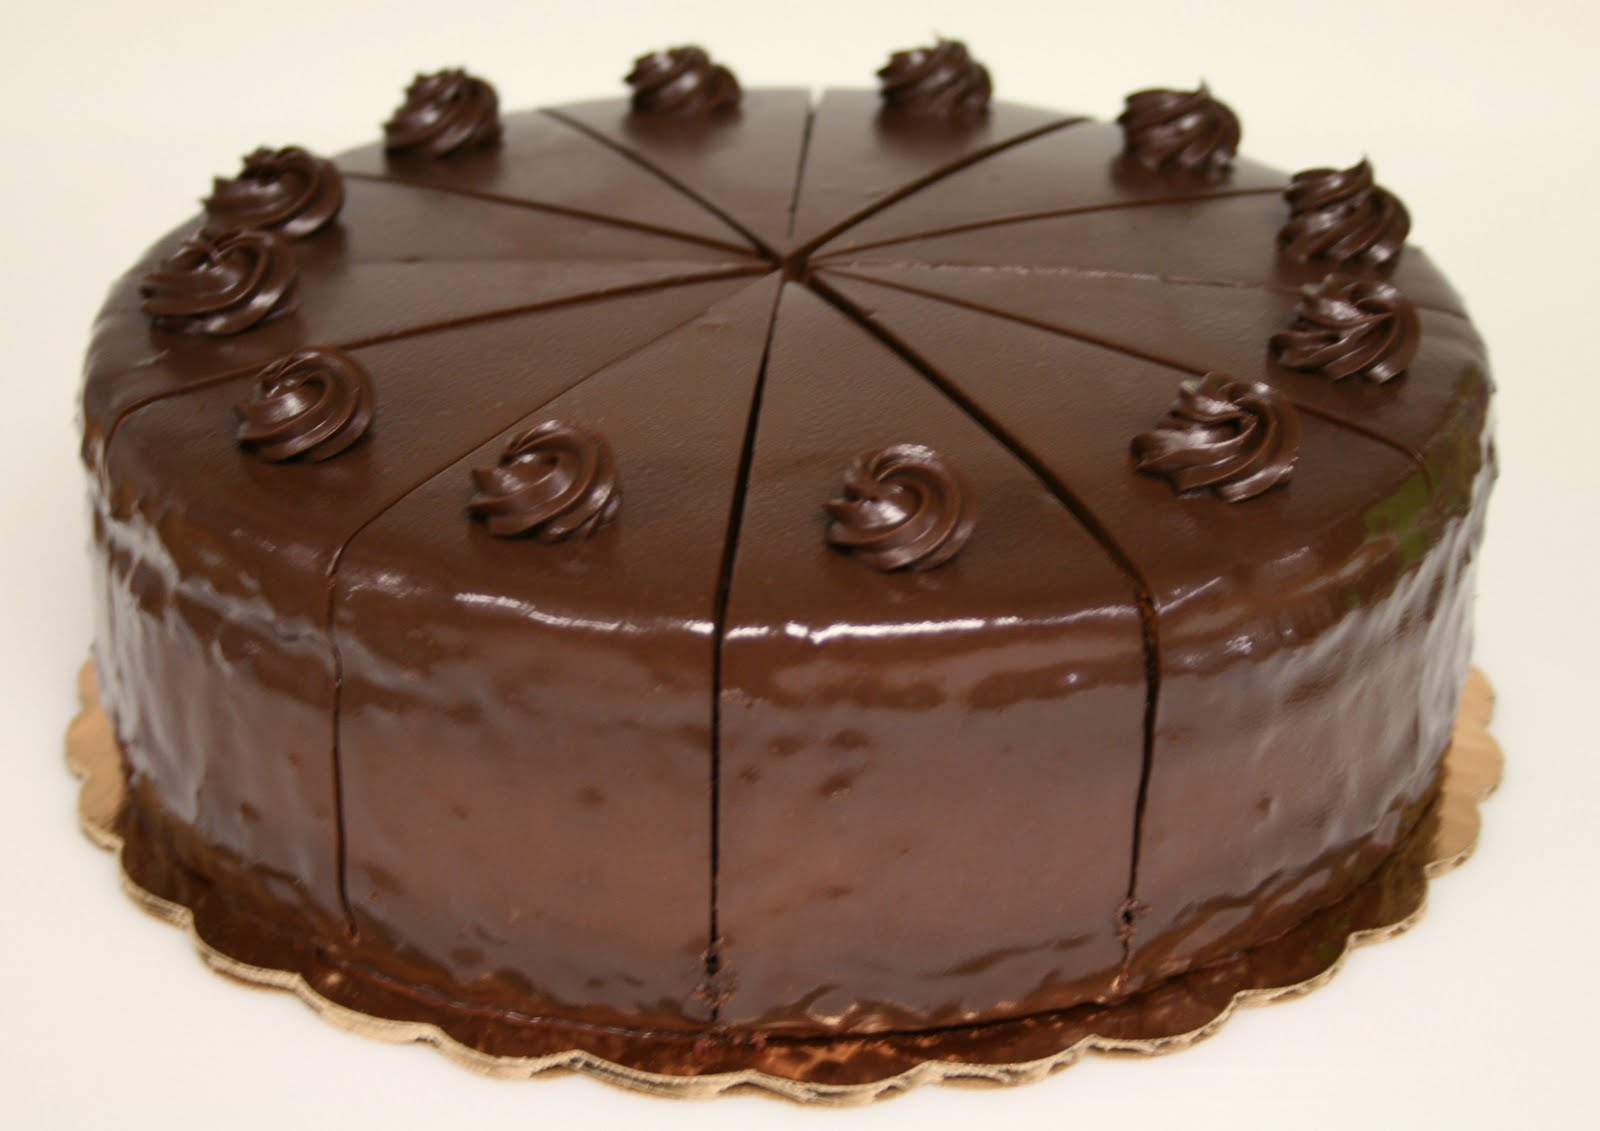 butter mousse cake irish cream chocolate mousse cake chocolate glazed ...